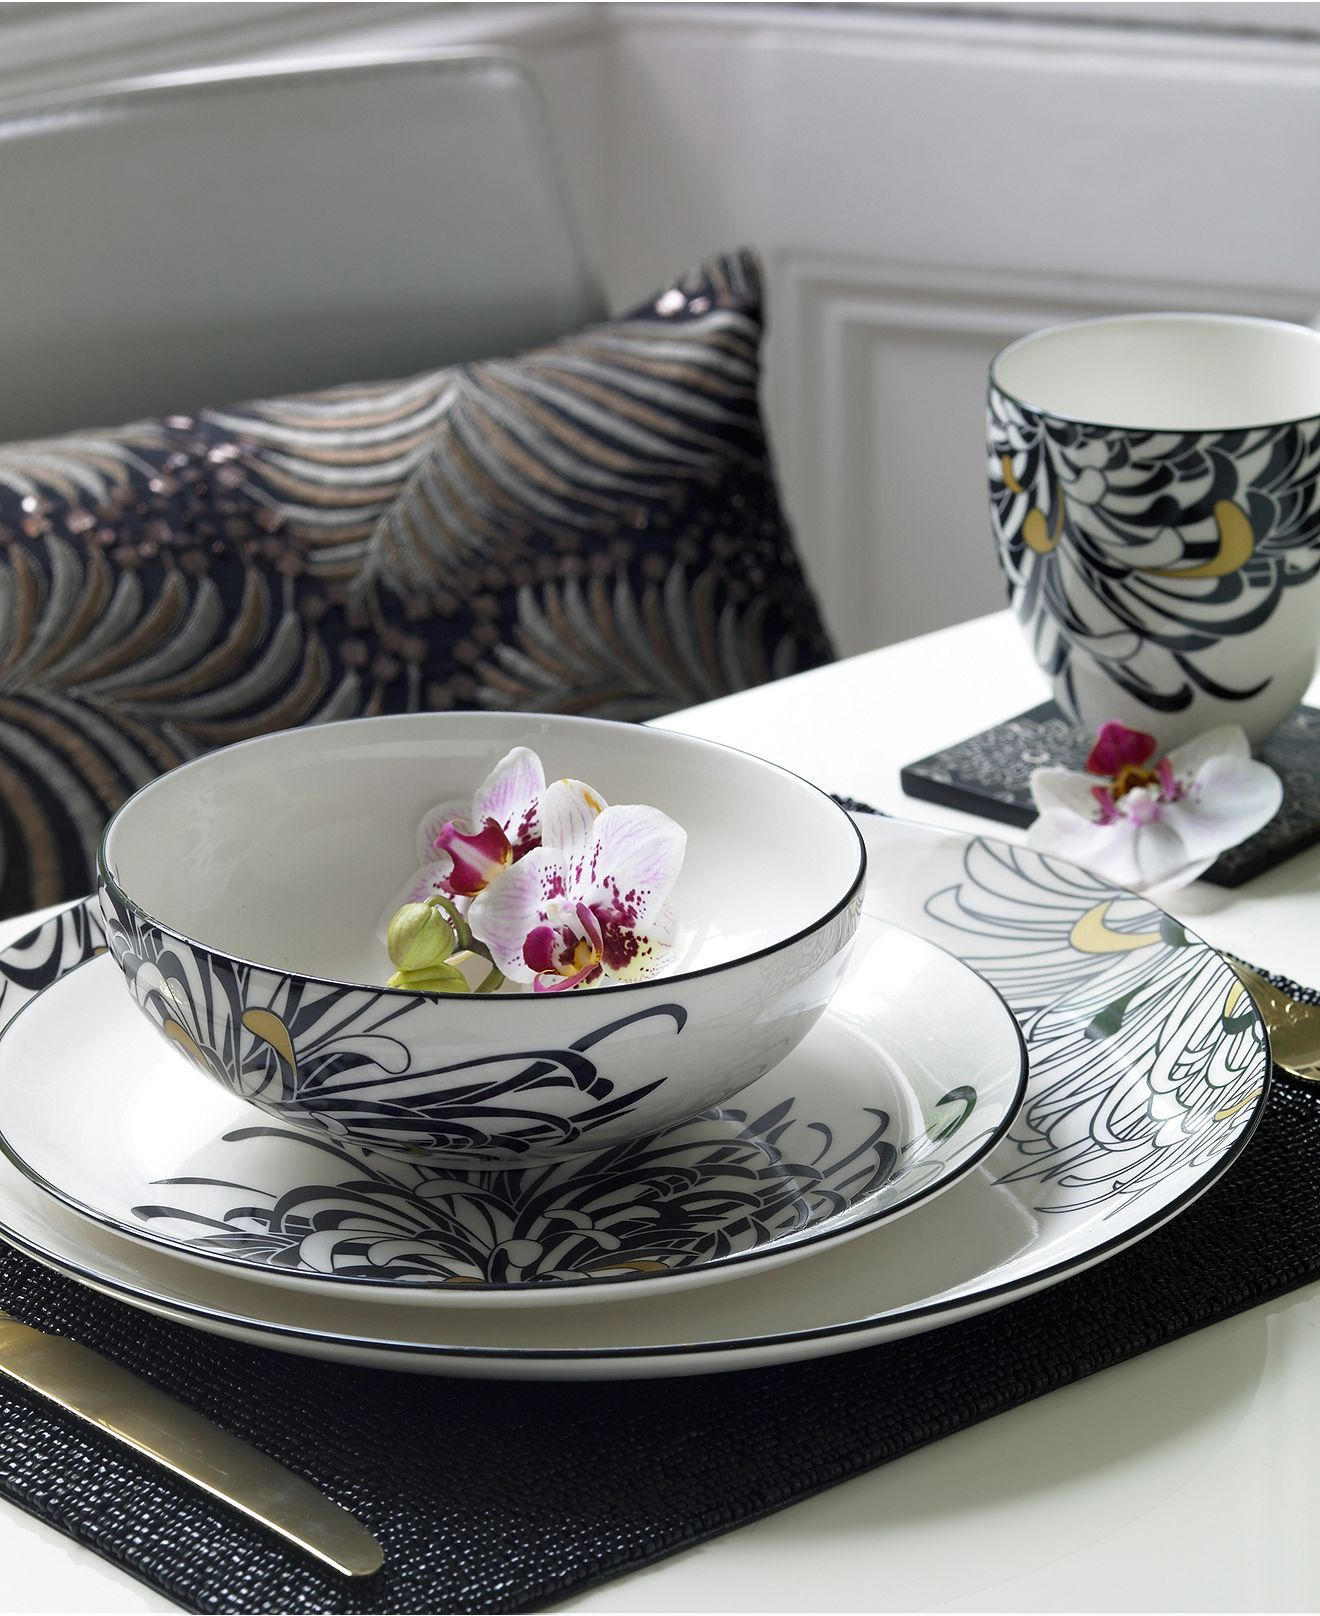 Monsoon Dinnerware Collection by Denby Chrysanthemum Collection - Fine China - Dining \u0026 Entertaining - & Monsoon Dinnerware Collection by Denby Chrysanthemum Collection ...